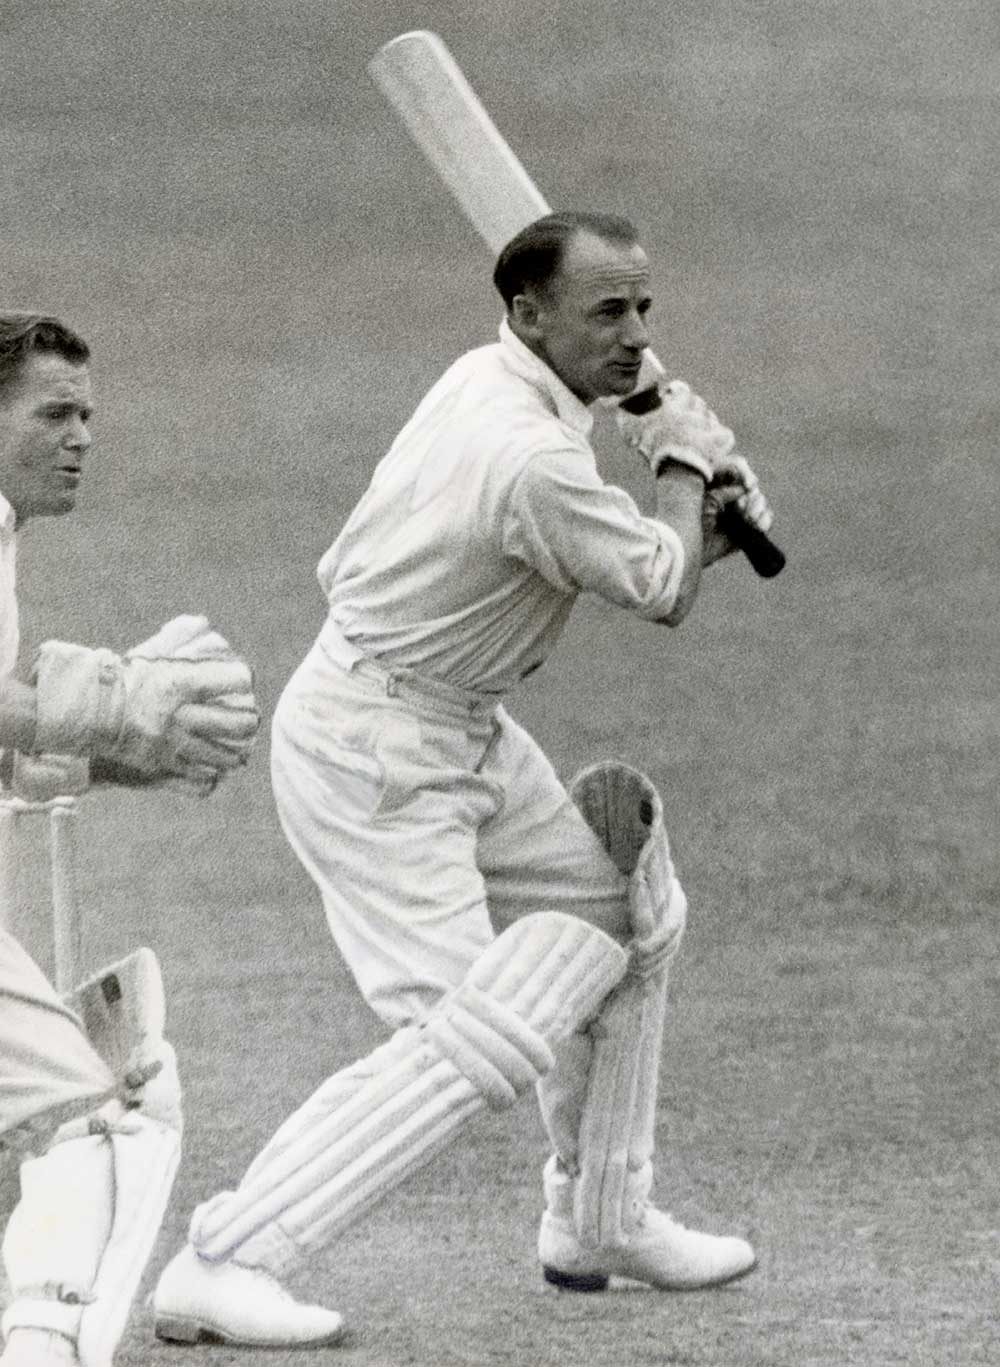 Sir Donald Bradman in action on the 1948 tour // Getty